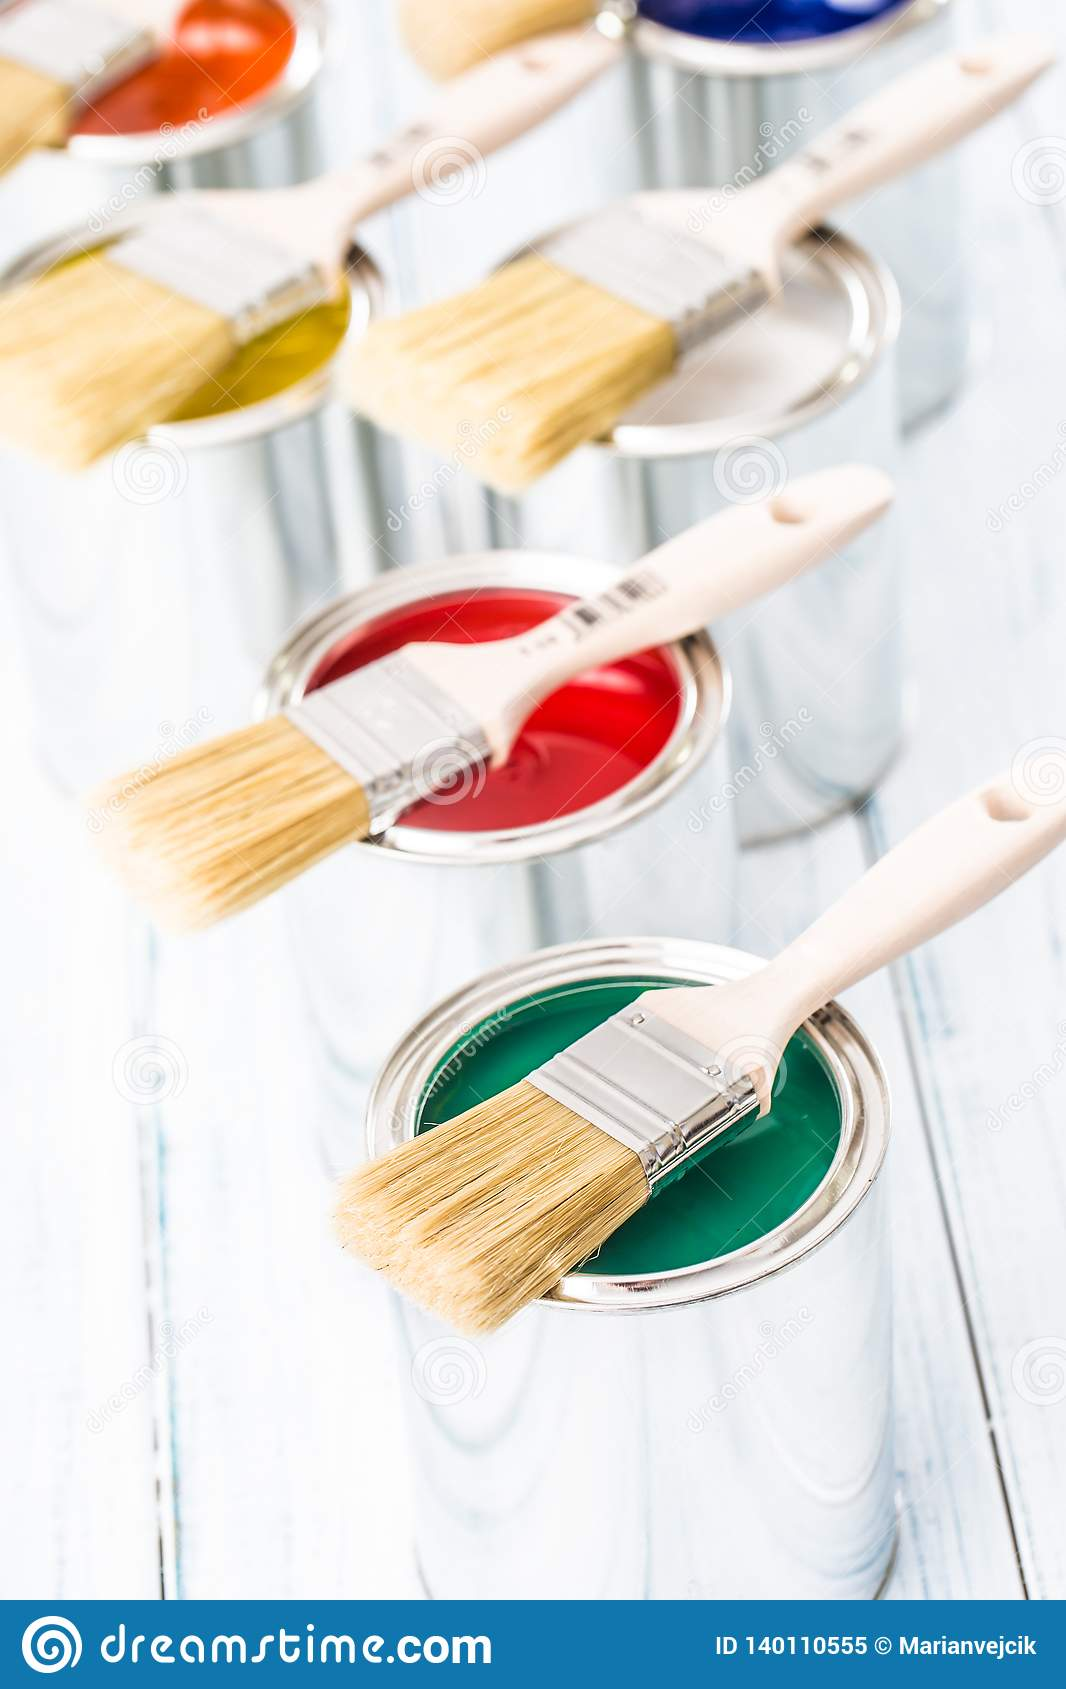 Close-up brushes lying on multicolored paint cans